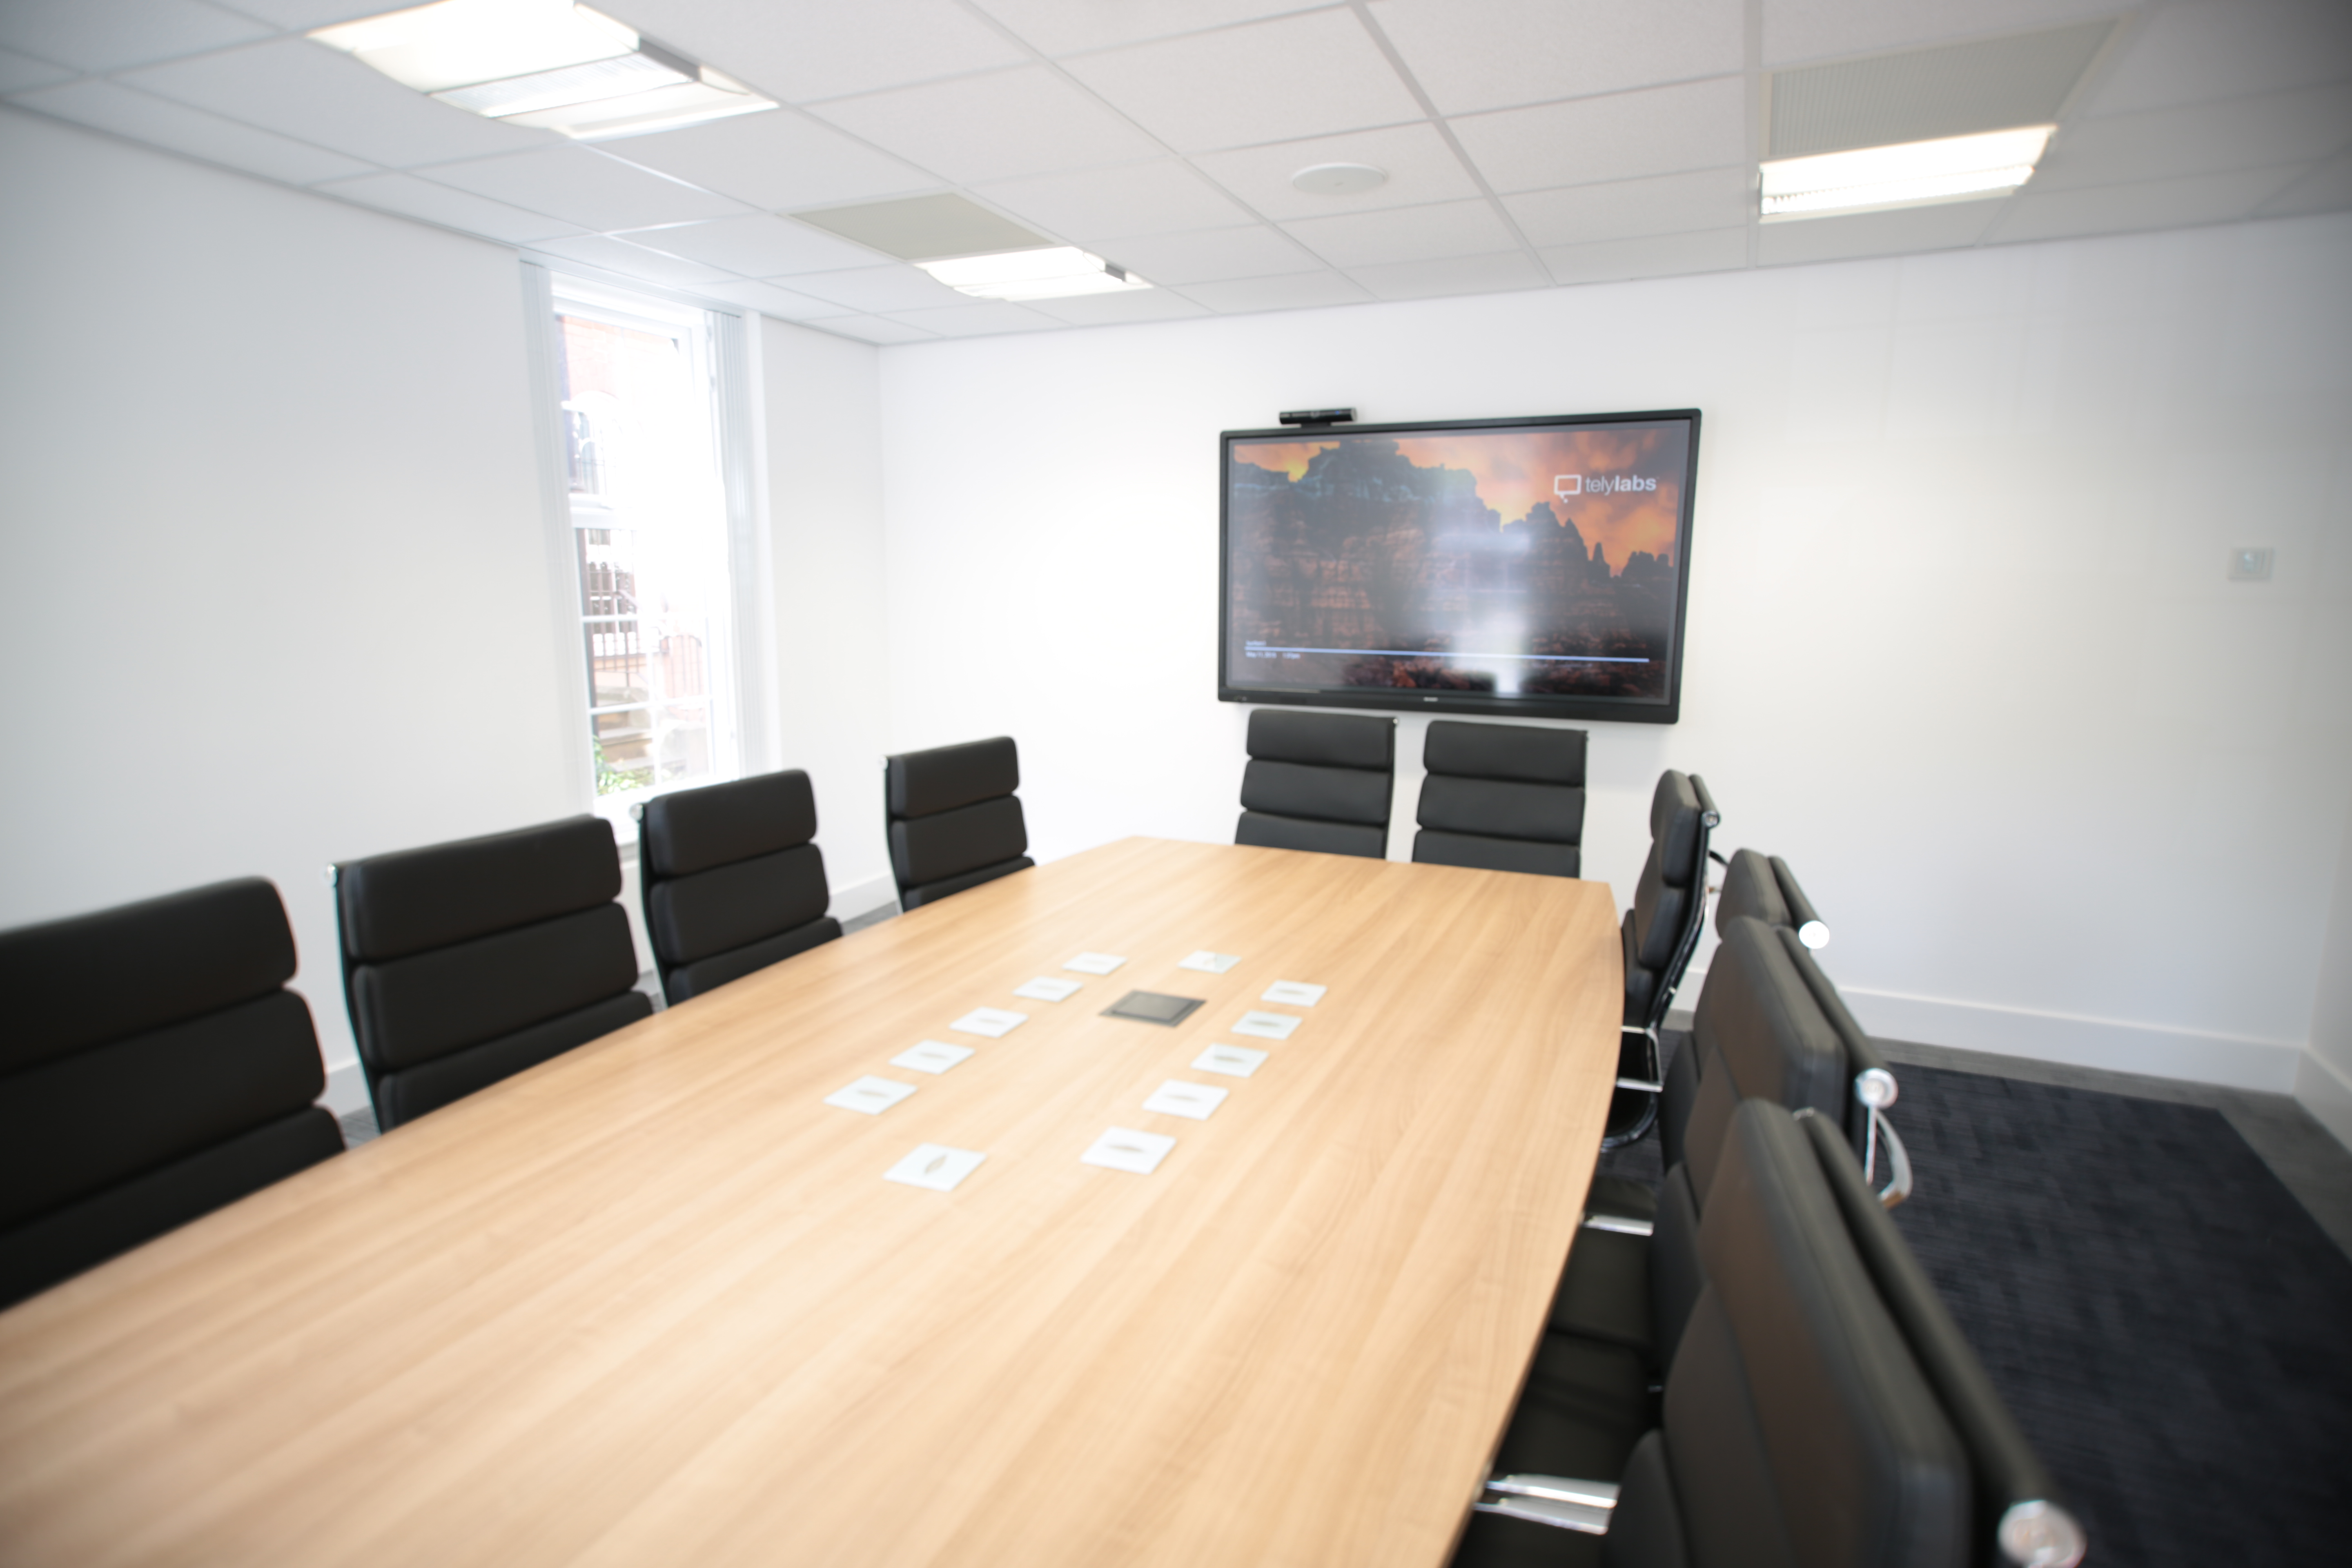 If Your Business Is Looking To Rent Serviced Office Or Meeting Rooms In Manchester City Centre Then BCA Member Stonebridge Offices Have The Ideal Solution